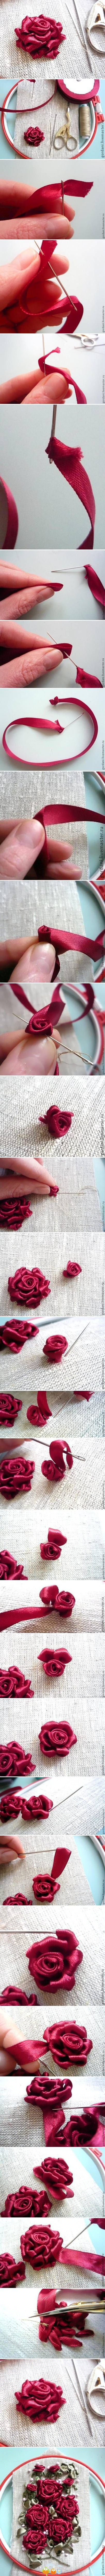 easy way to make fabric flowers ✭Teresa Restegui http://www.pinterest.com/teretegui/ ✭